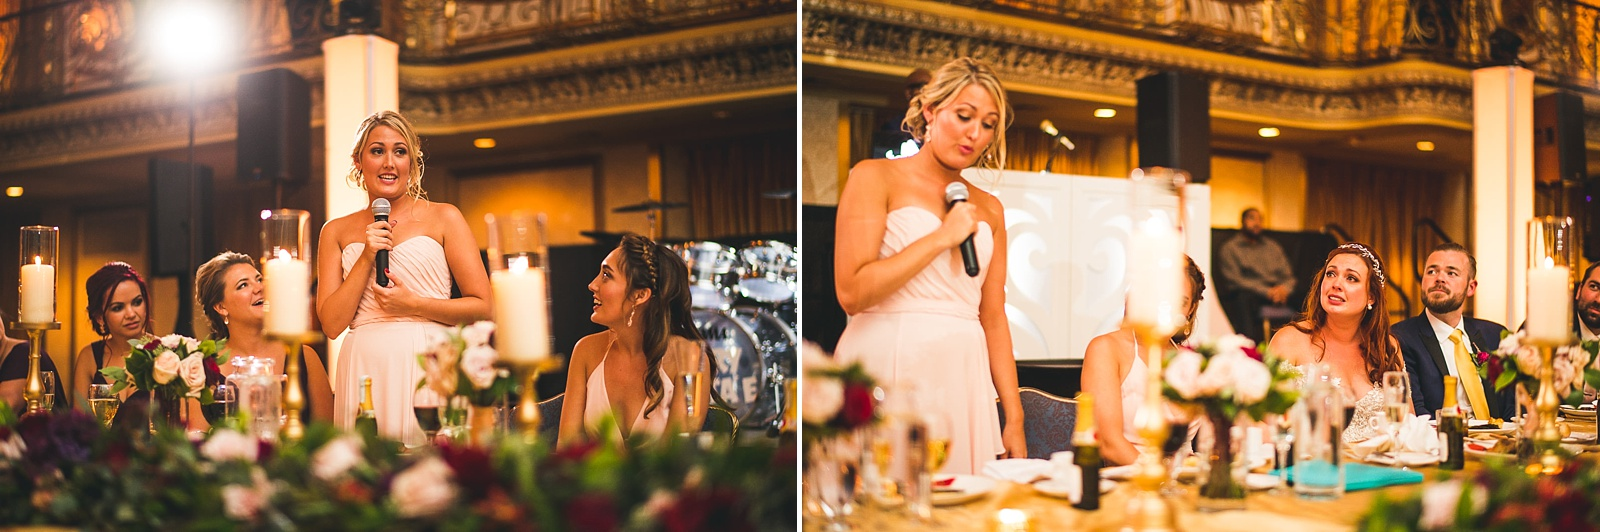 63 sister gives an amazing speech - Hilton Chicago Wedding Photographer // Sarah + Aaron